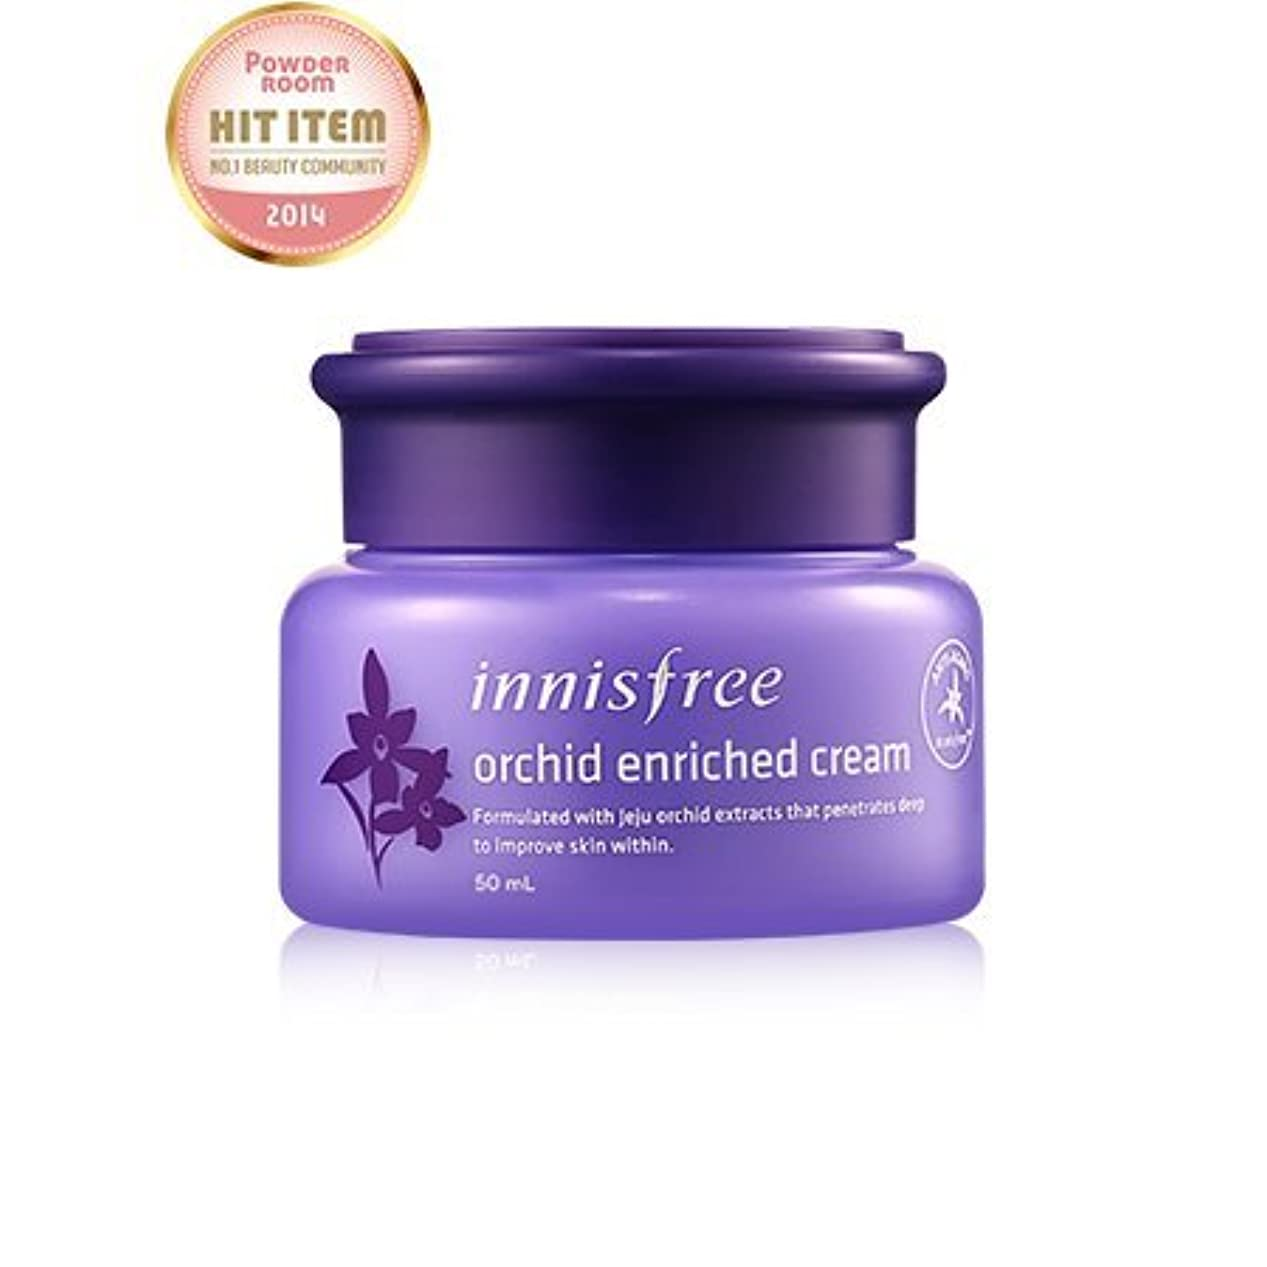 Innisfree Orchid Enriched Cream/ Made in Korea